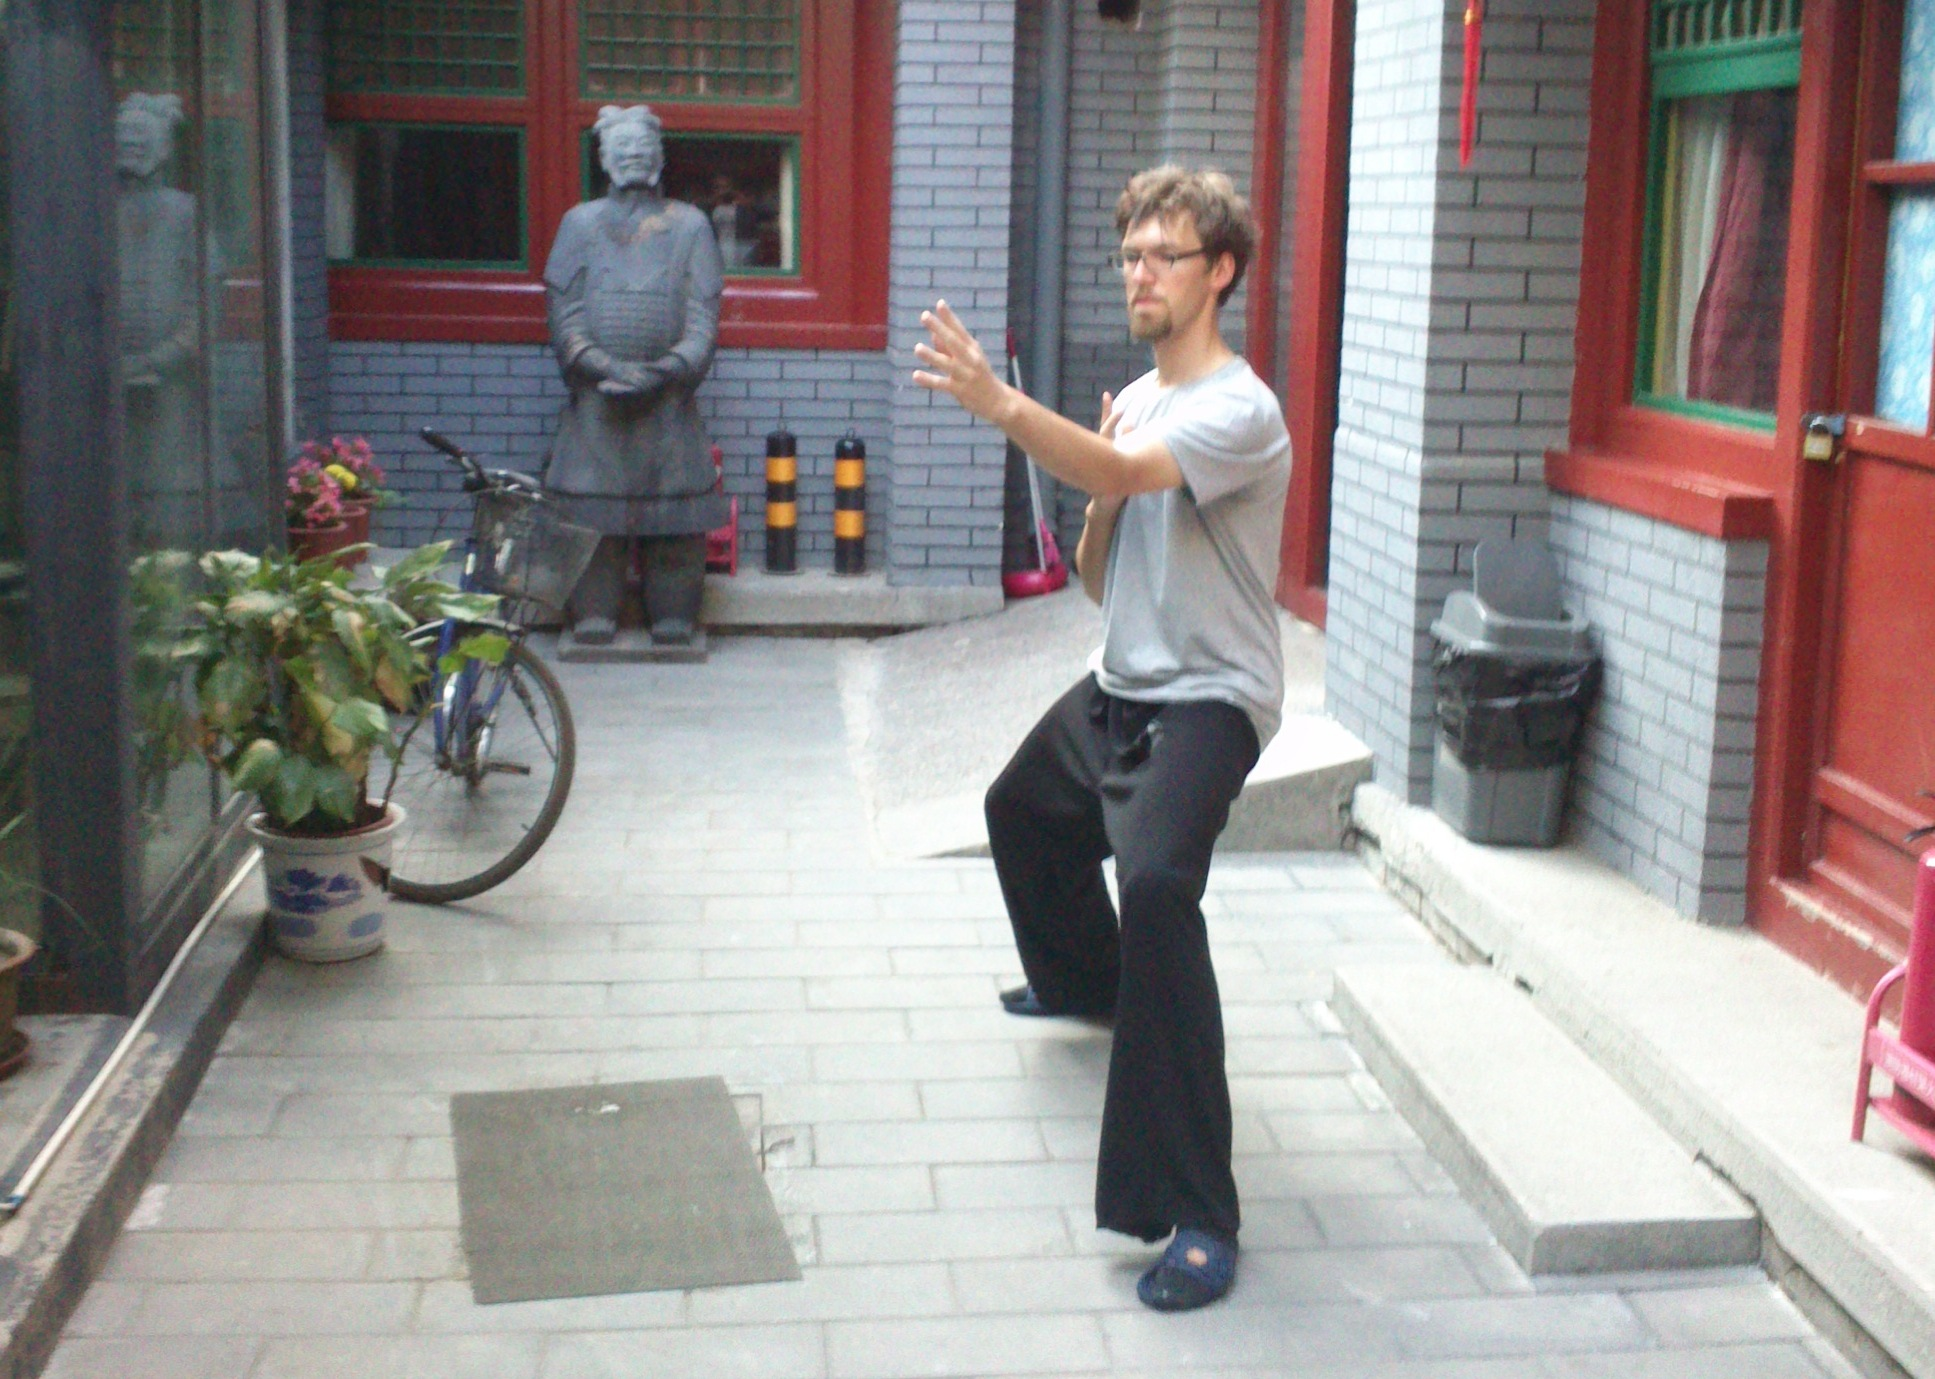 Morgentraining in einem Hutong in Peking